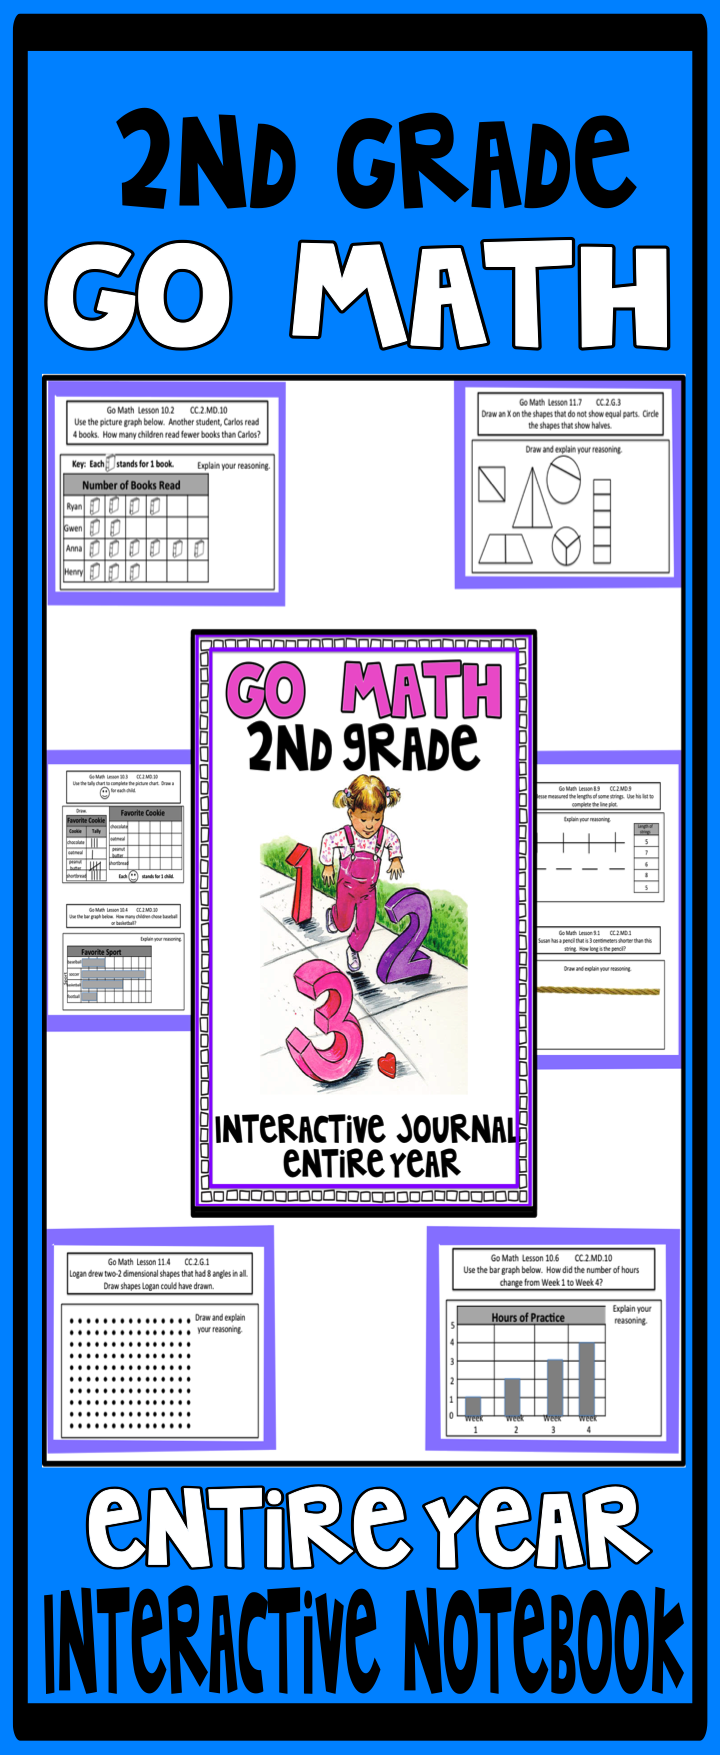 This Is A Year Long 2nd Grade Interactive Notebook Companion To The